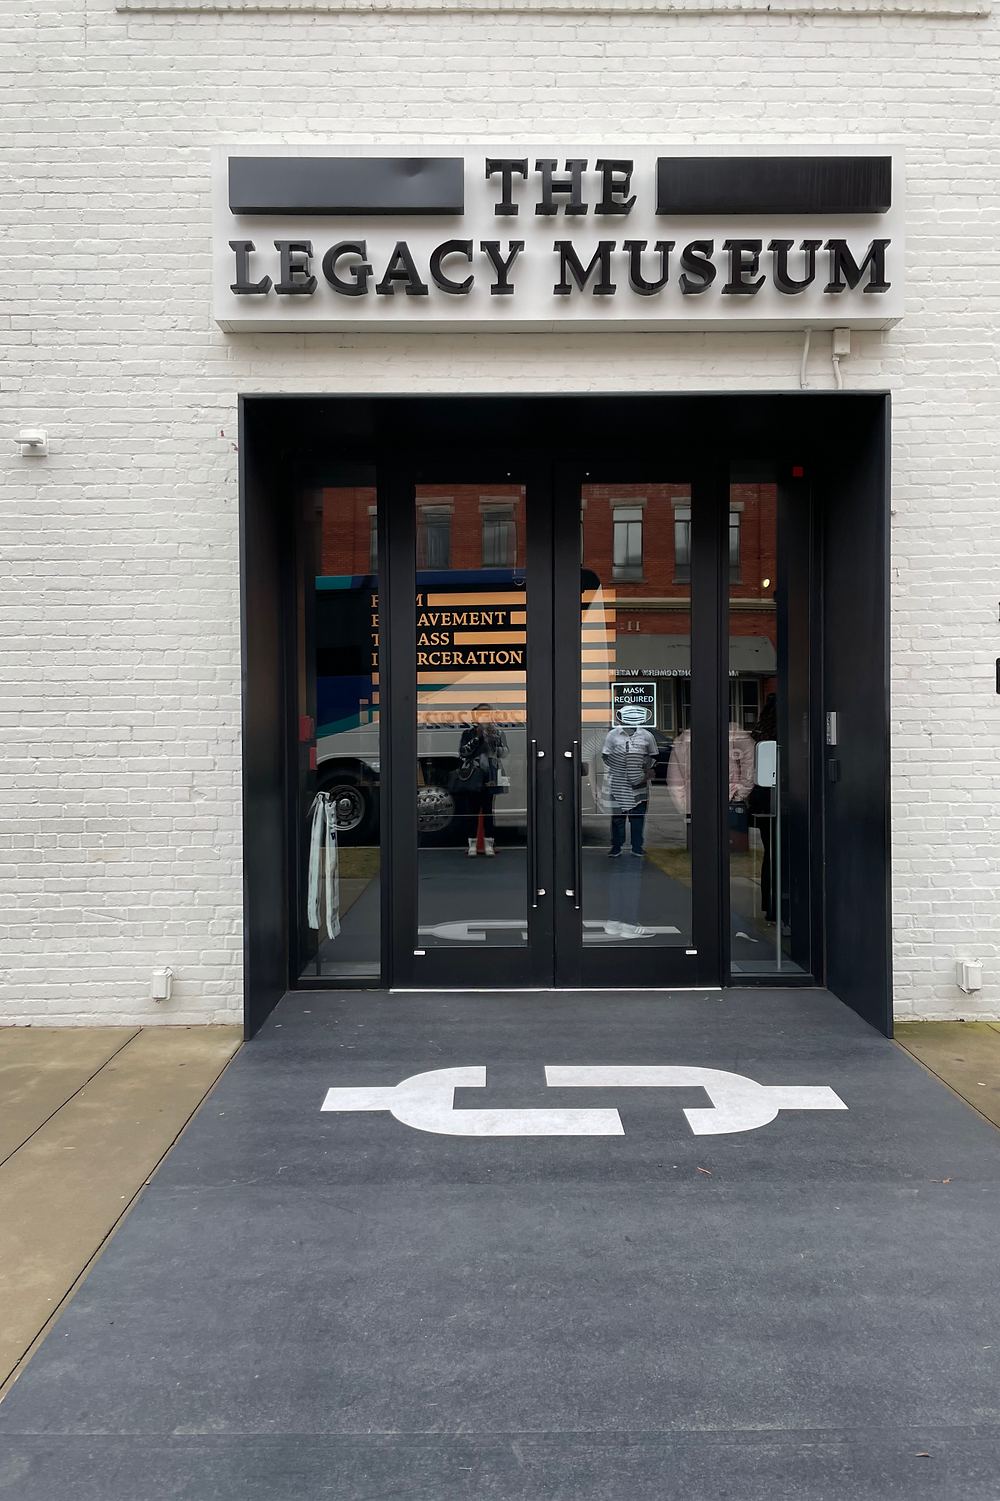 The Legacy Museum